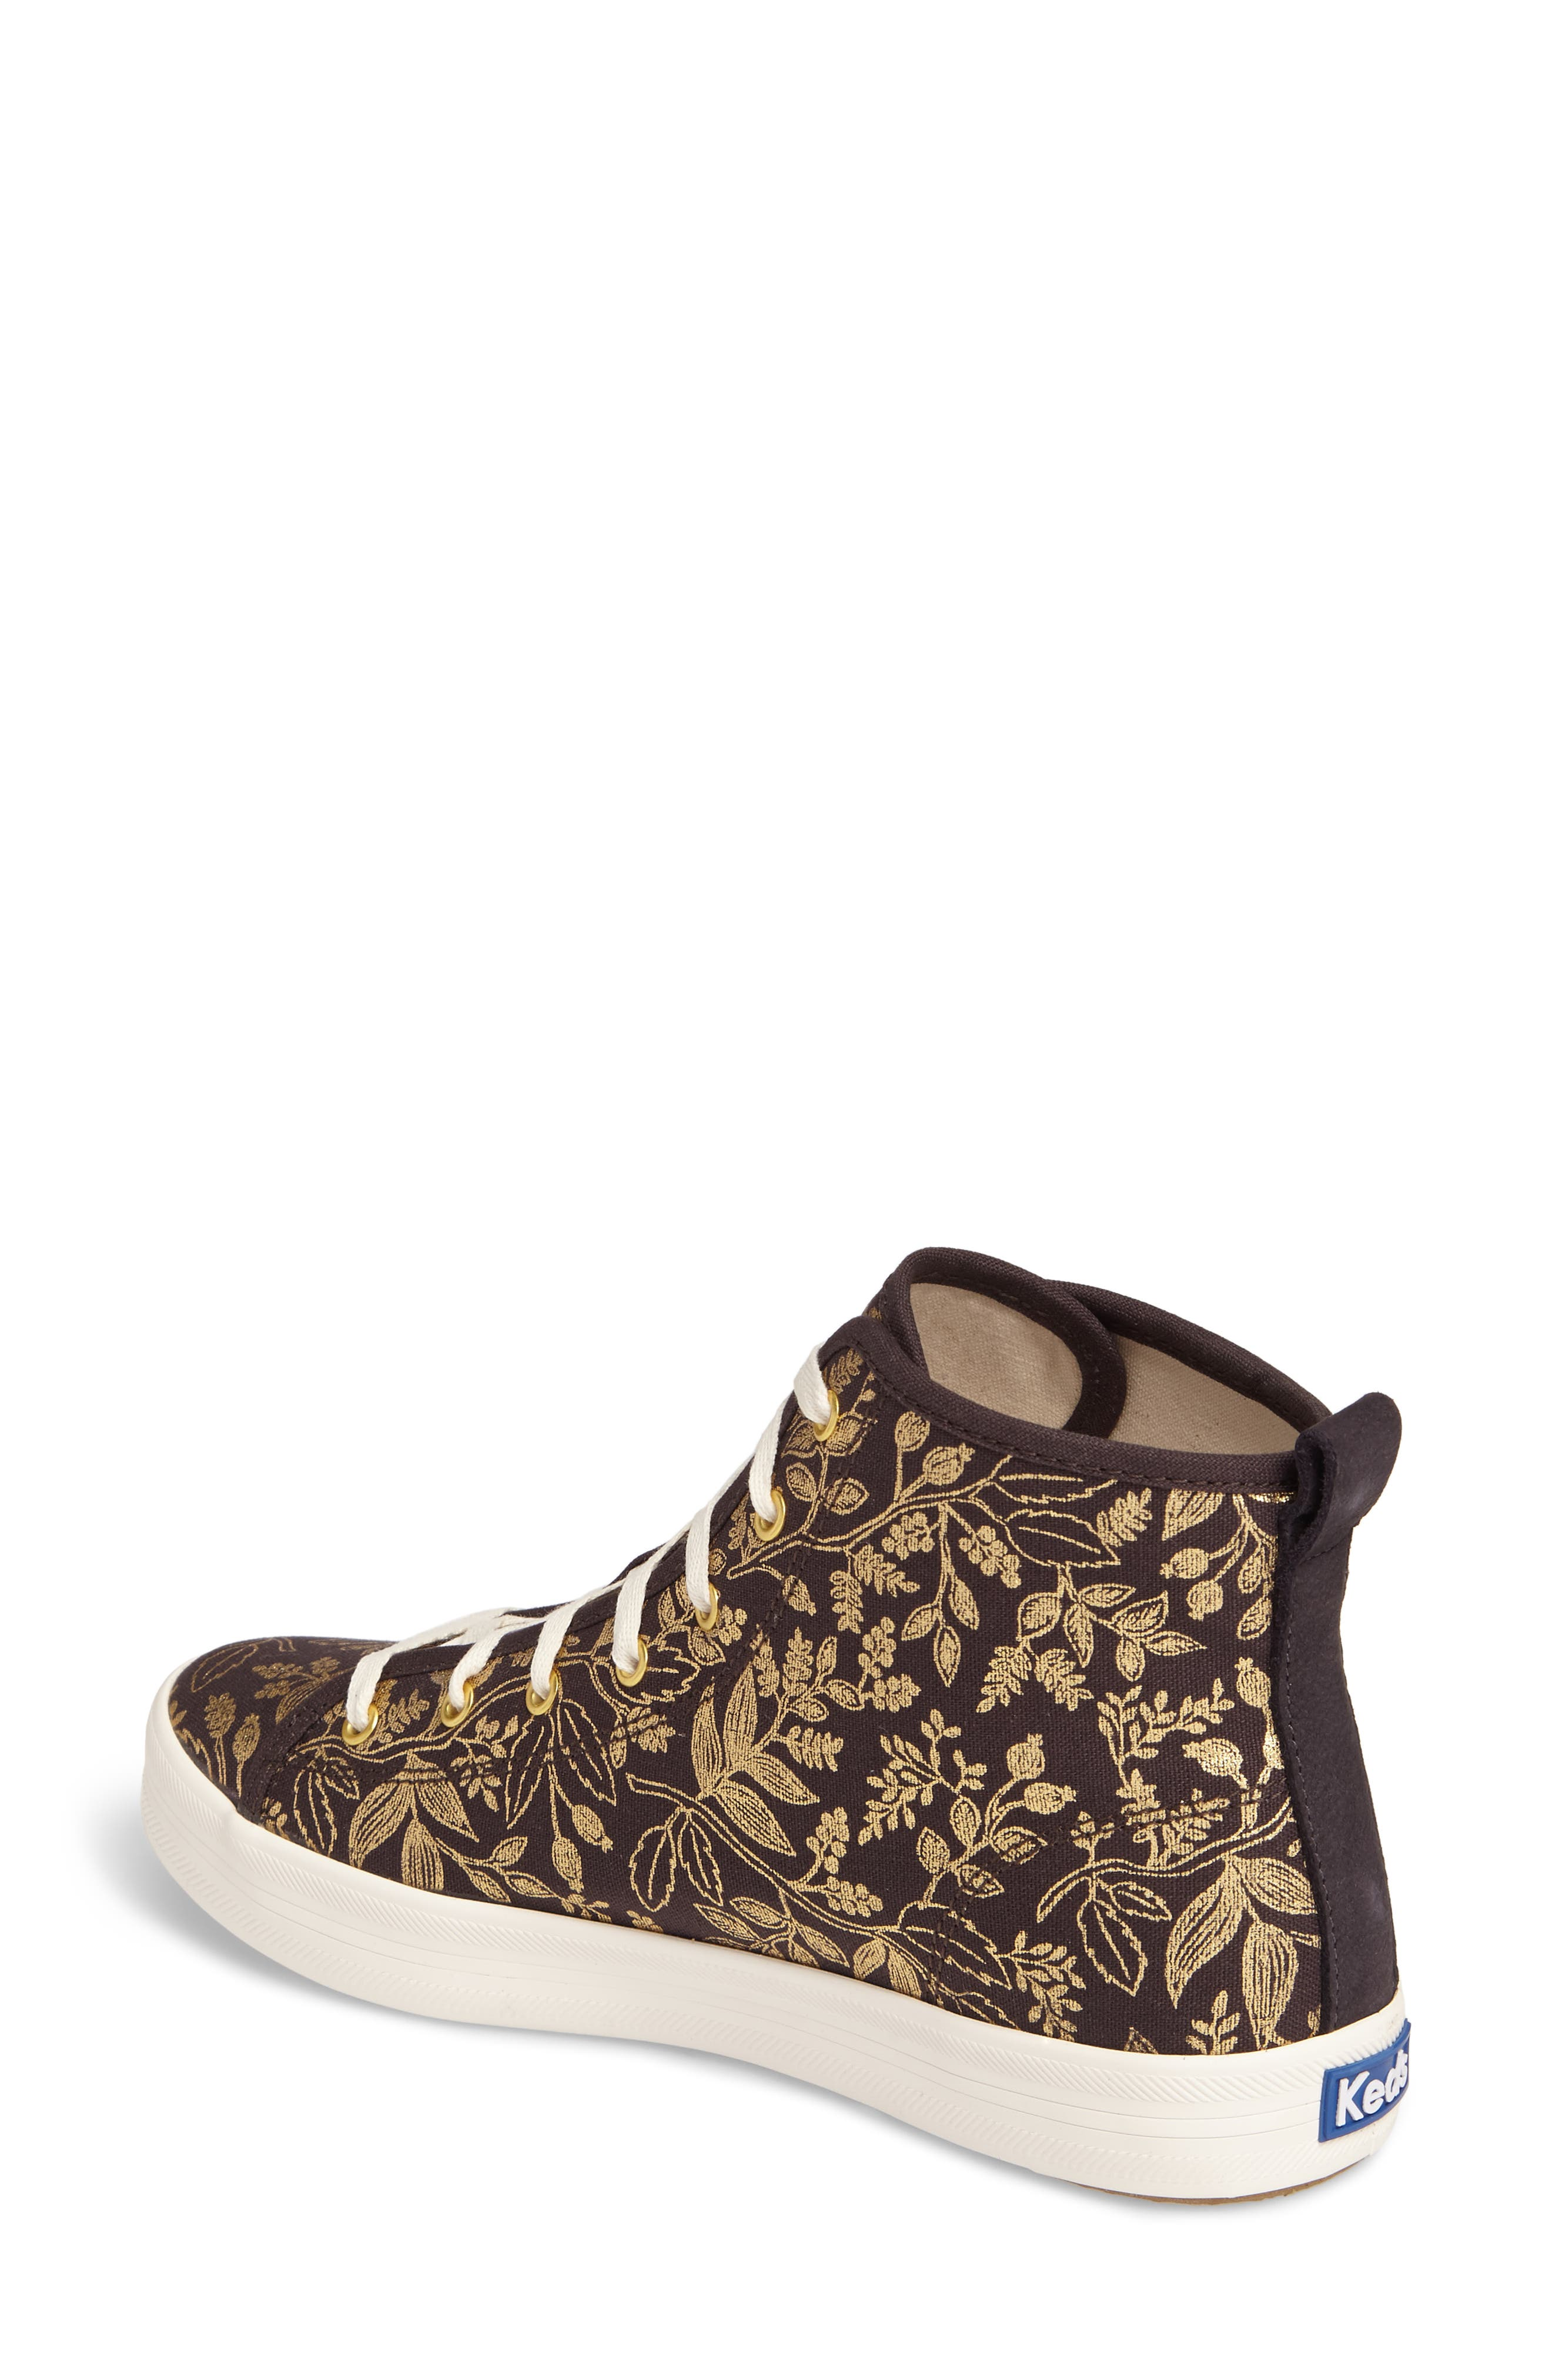 x Rifle Paper Co. Queen Anne High Top Sneaker,                             Alternate thumbnail 2, color,